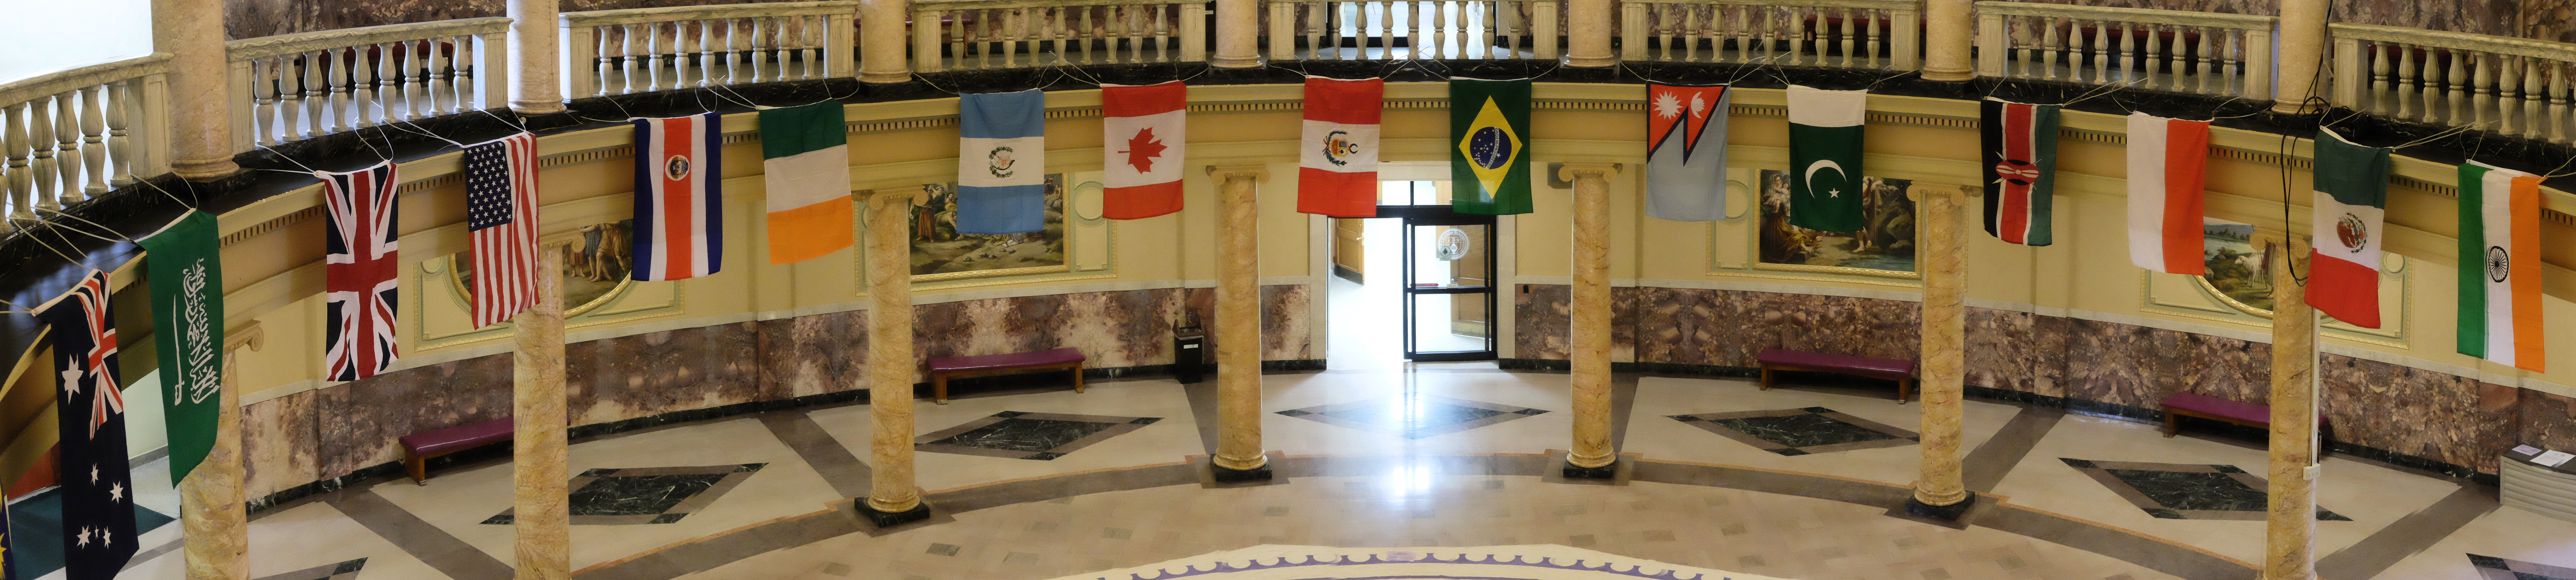 2015-11-18-International Flags-Rotunda-DSCF0541b